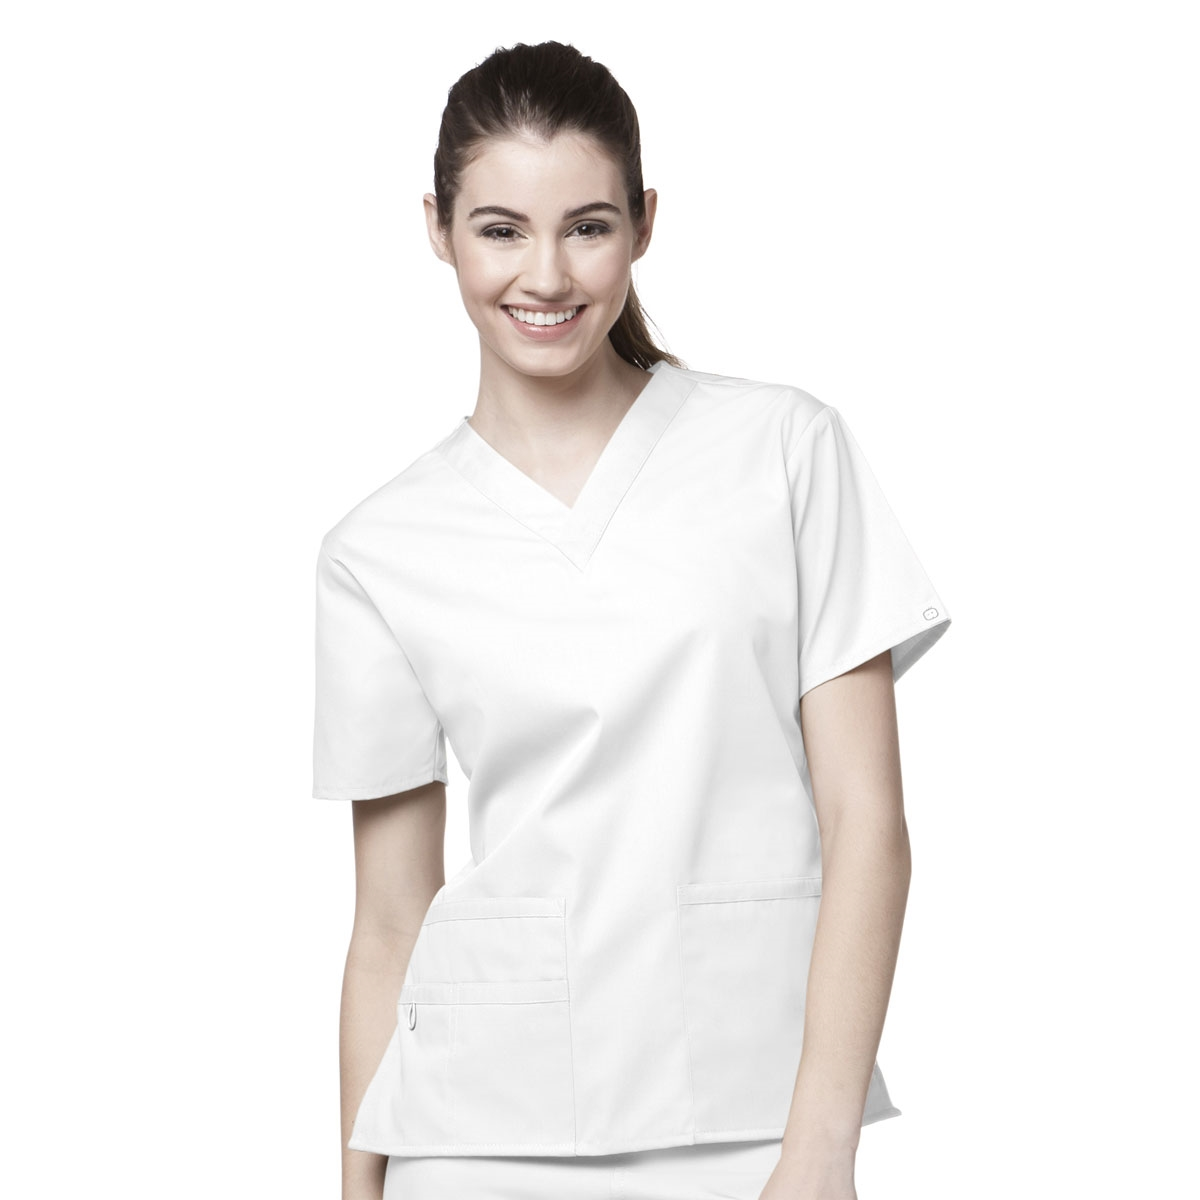 9fa4a624c89 Bravo Lady Fit V-Neck Scrub Top Origins Line - WonderWink Scrubs